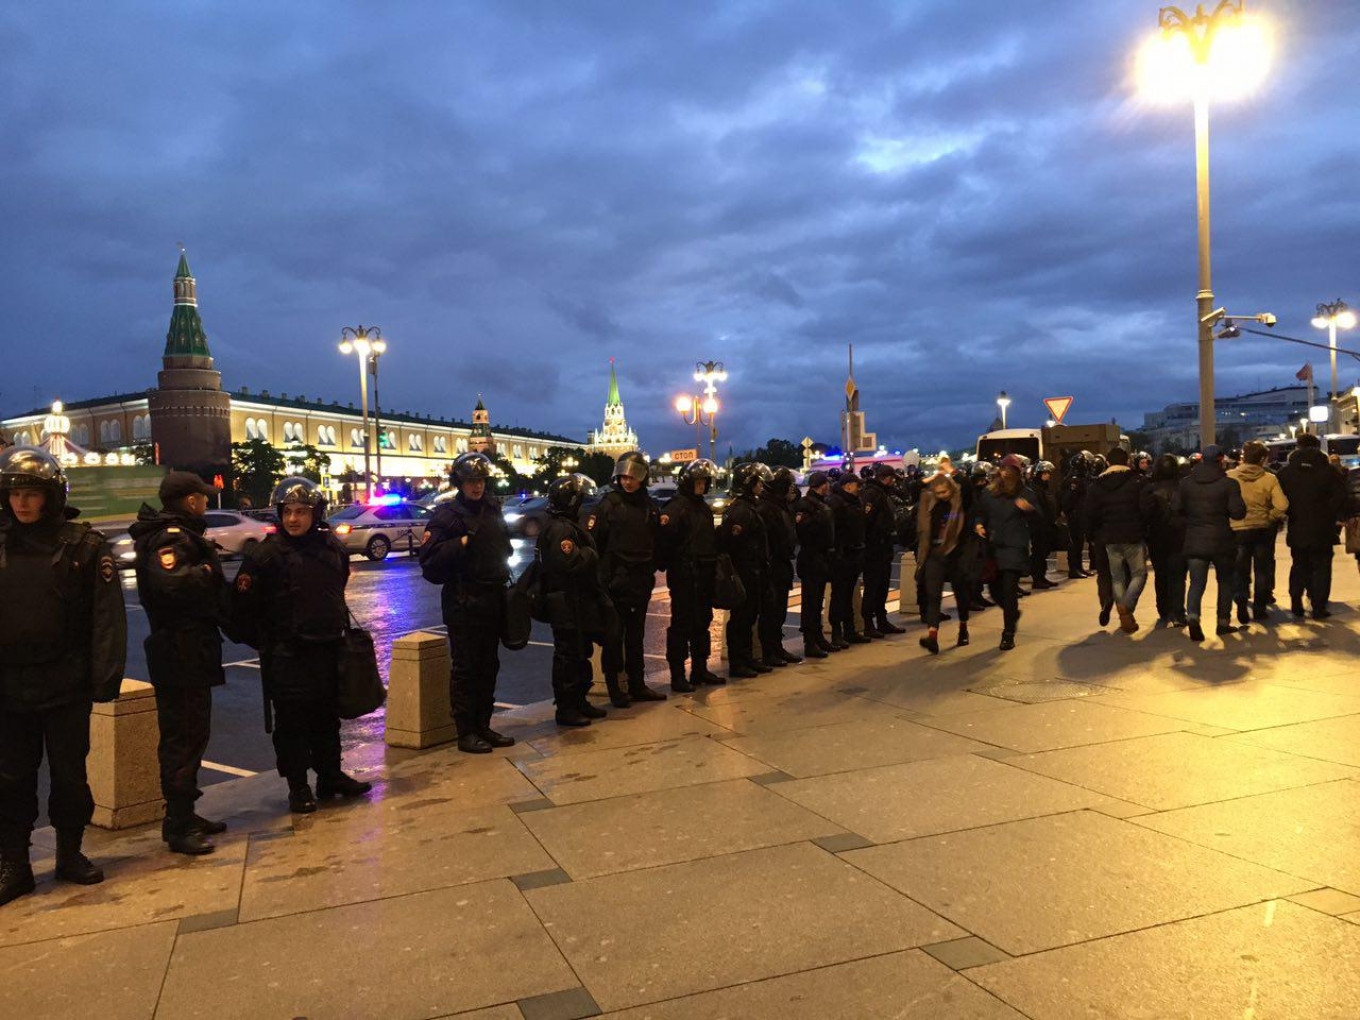 Riot police stands in line by the Kremlin, though most protesters have gone home. Ksenia Churmanova/ For MT